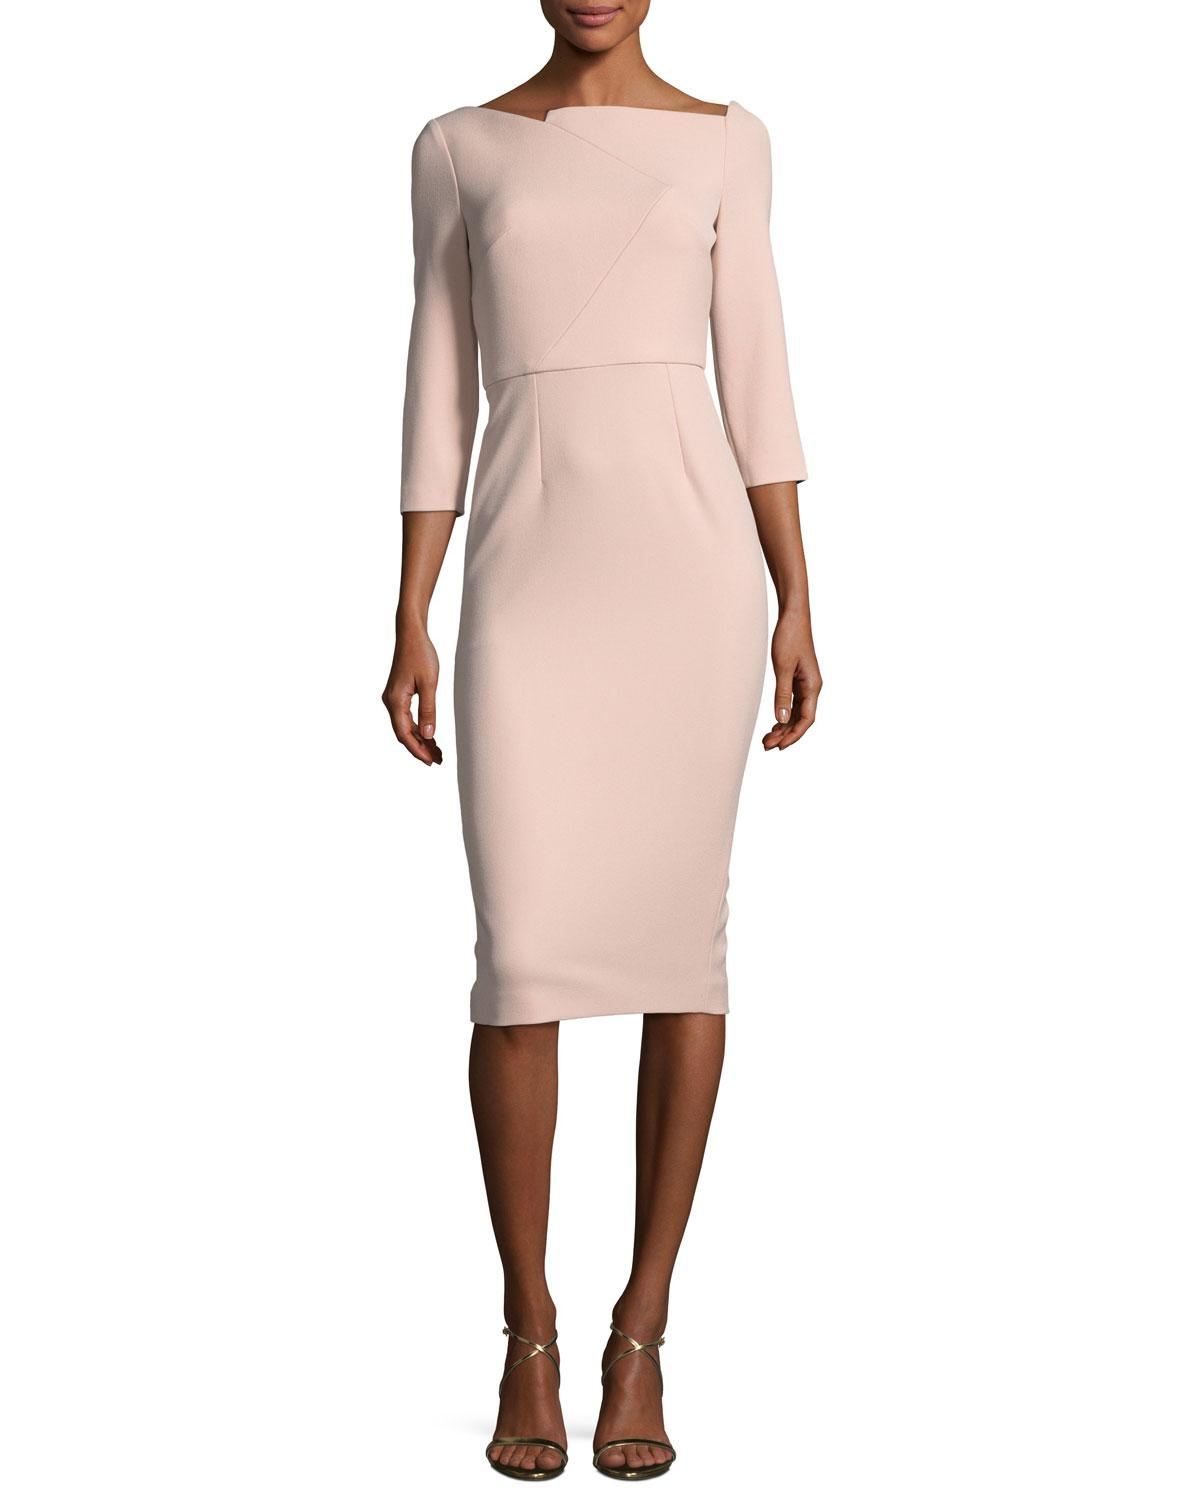 510e6e17f5a8 Lyst - Roland Mouret Boat-neck 3 4-sleeve Sheath Dress in Pink